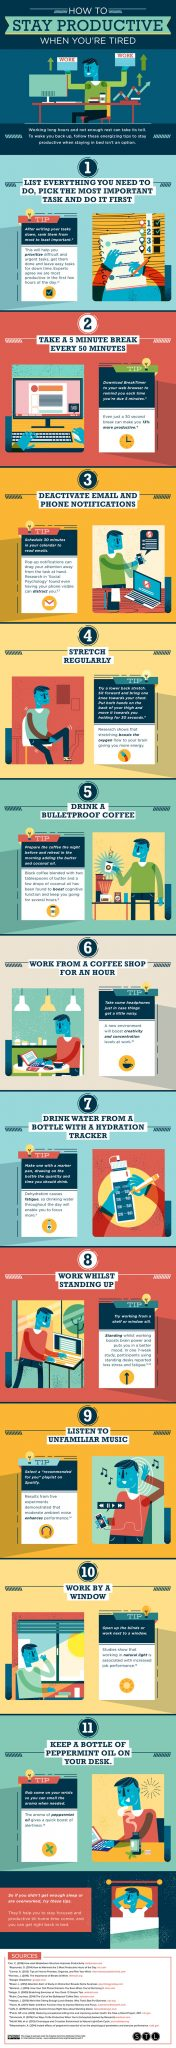 Stay Productive - infographic